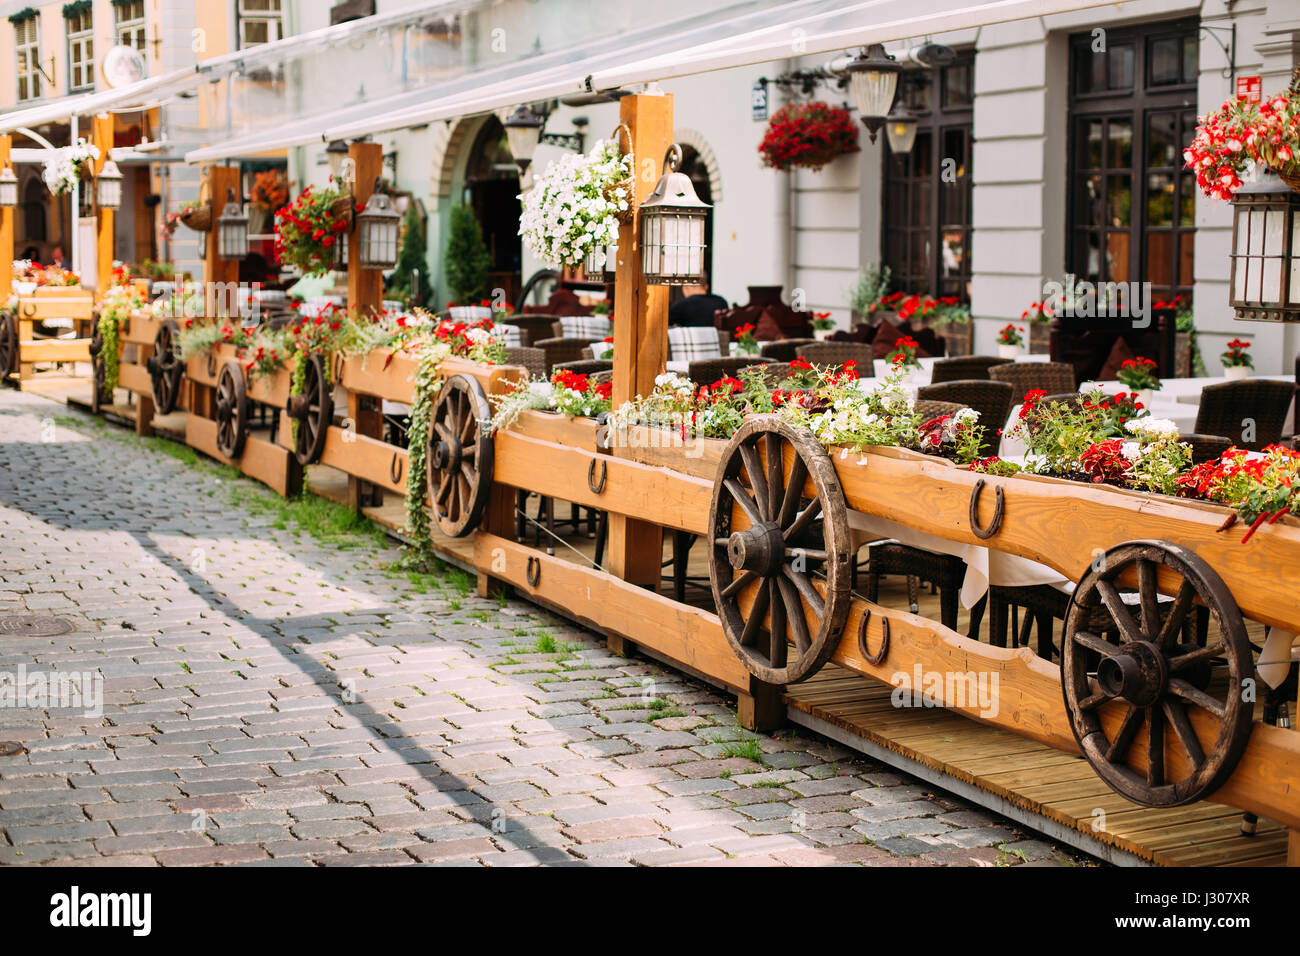 Exterior Of Cozy Outdoor Street Cafe In Retro Rural Rustic Style On Wooden Wall Or Restaurant Hanging Wheels From Peasants Carts